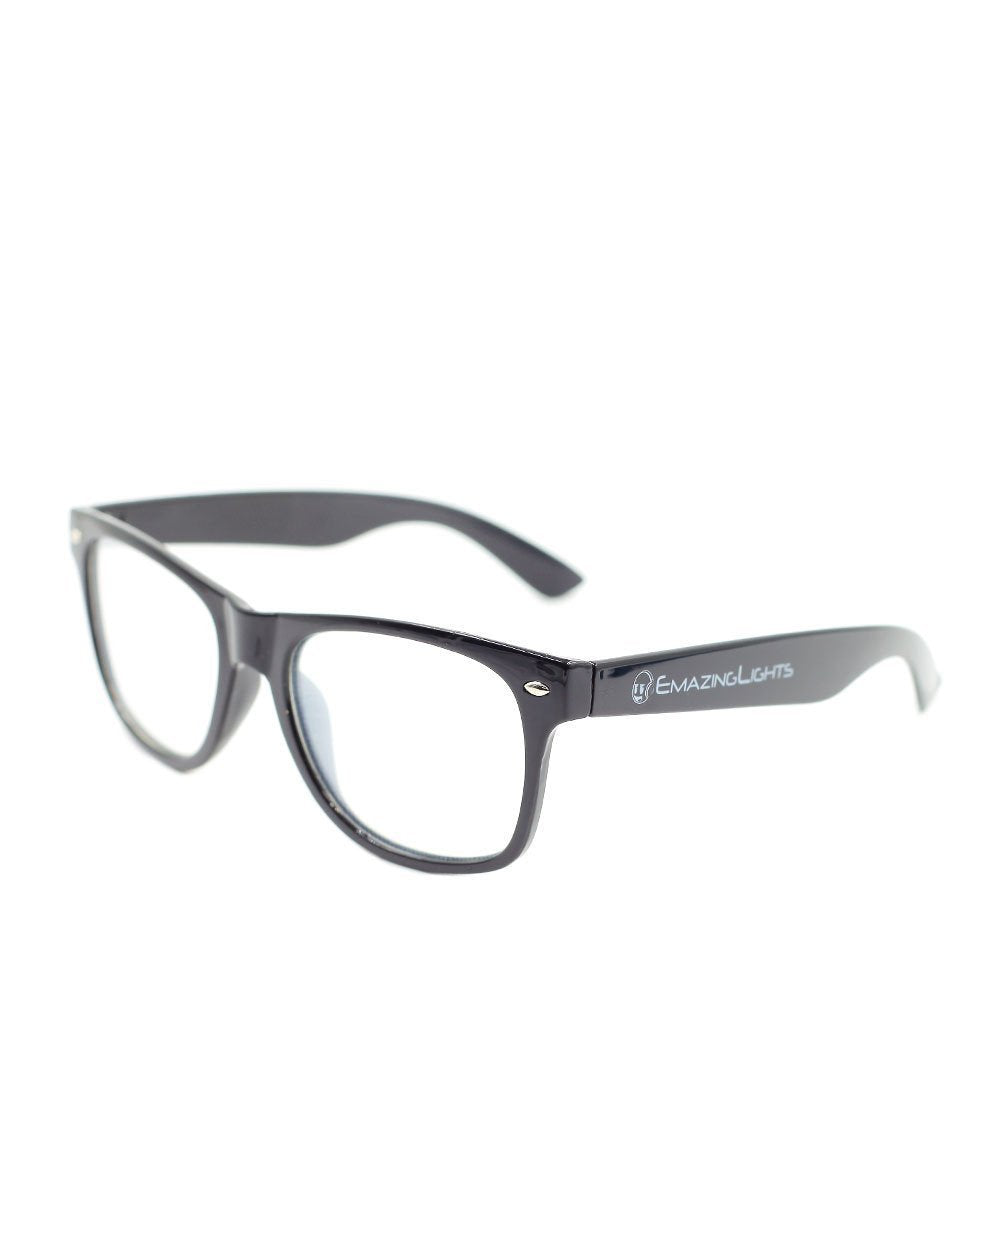 Spiral Diffraction Glasses - Black